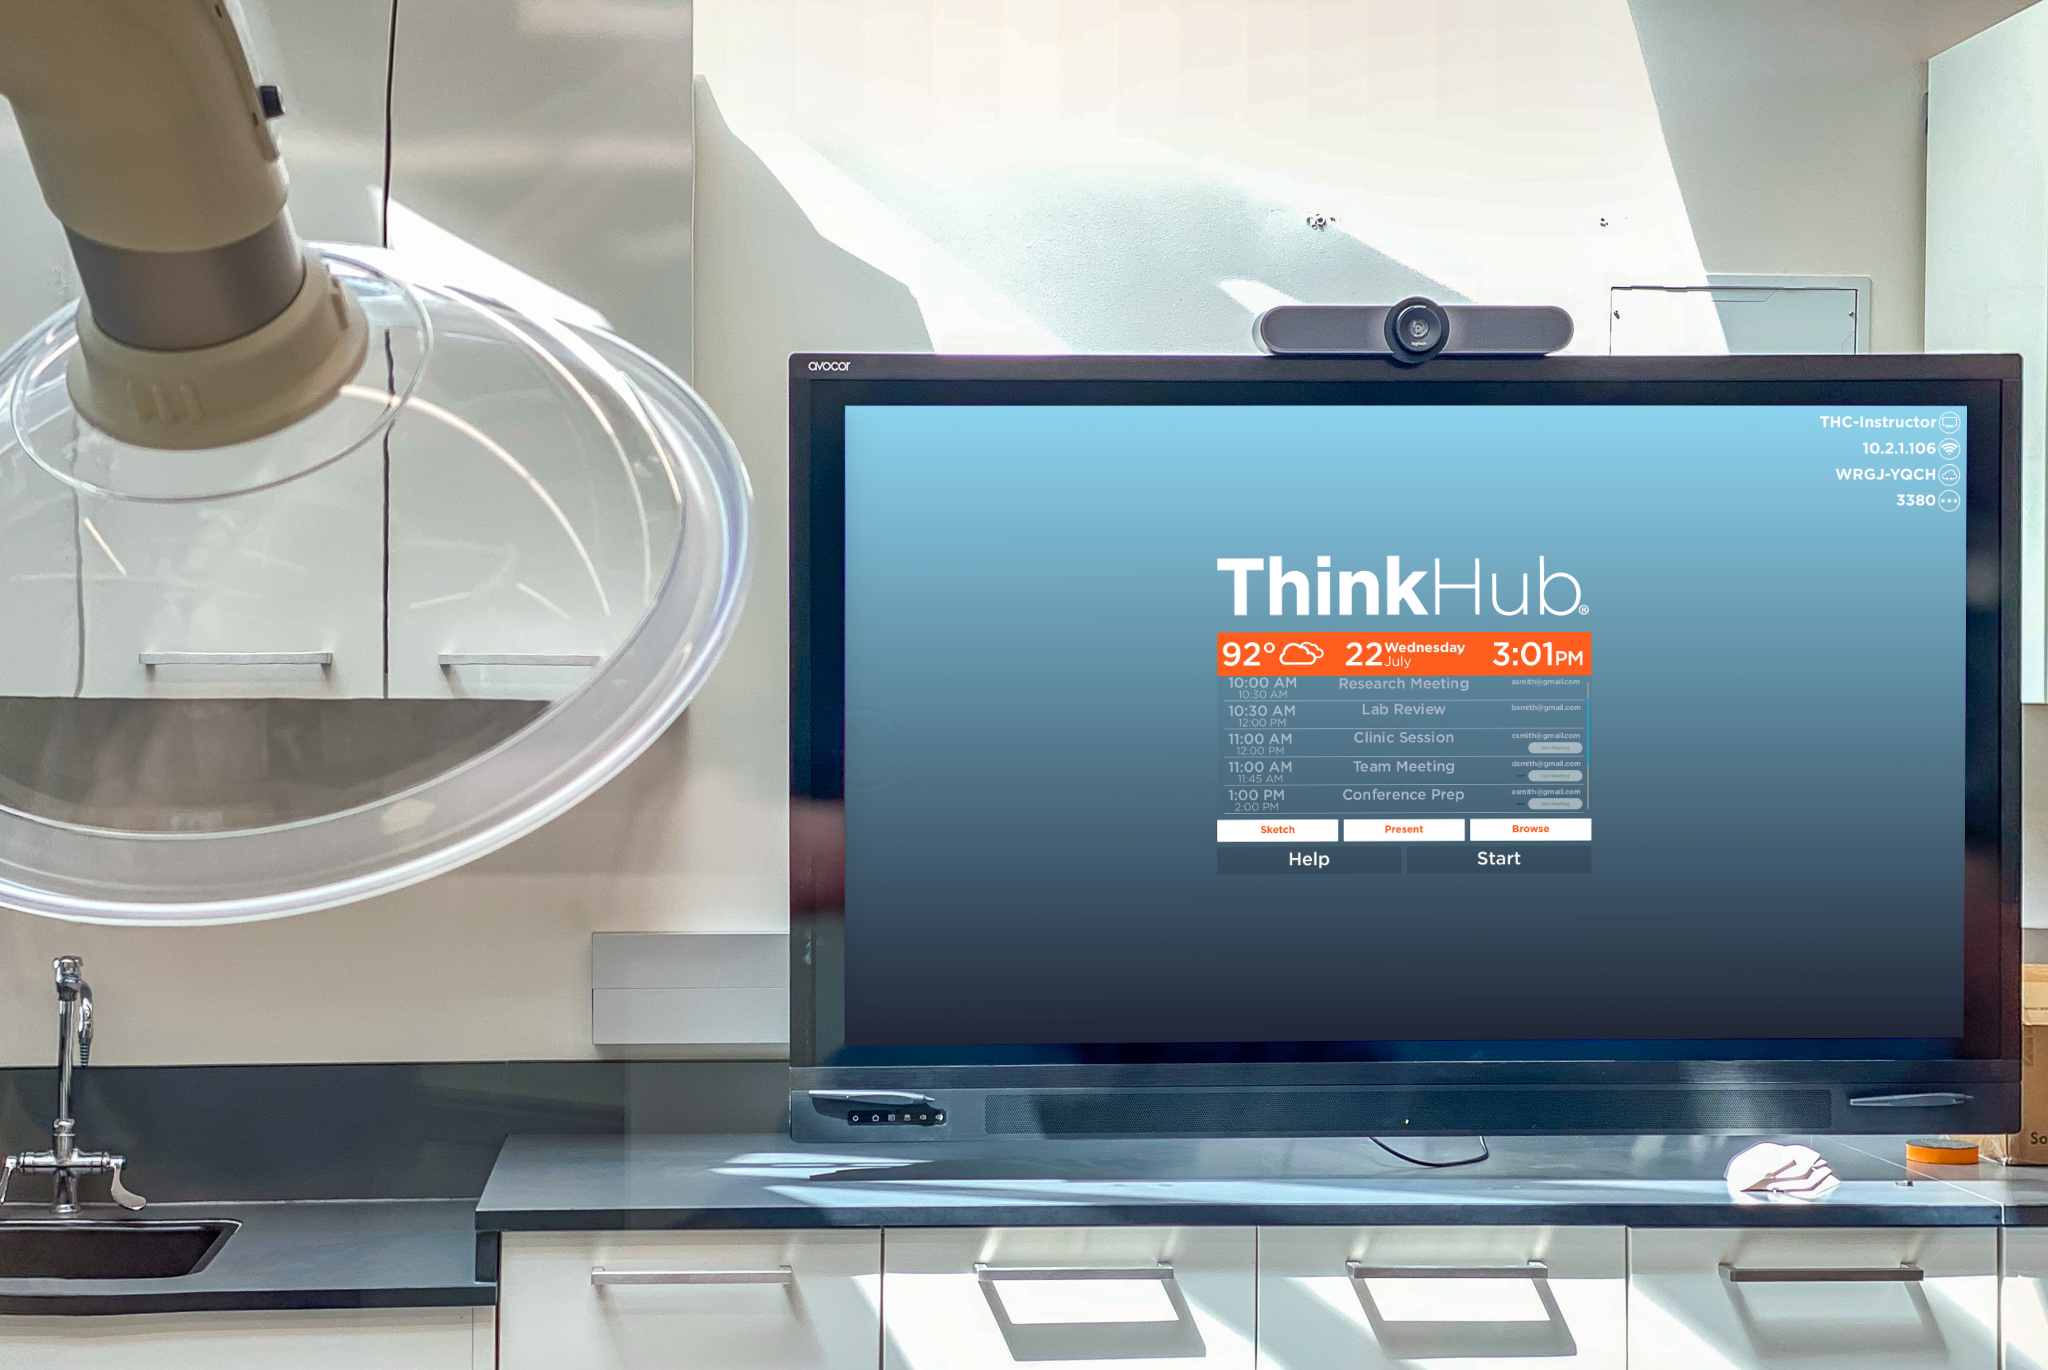 T1V-ThinkHub-USC-Ellison-Institute-Single-Panel-Display-in-Lab-ThinkHub-Collaboration-Interactive-Software-CA-2020